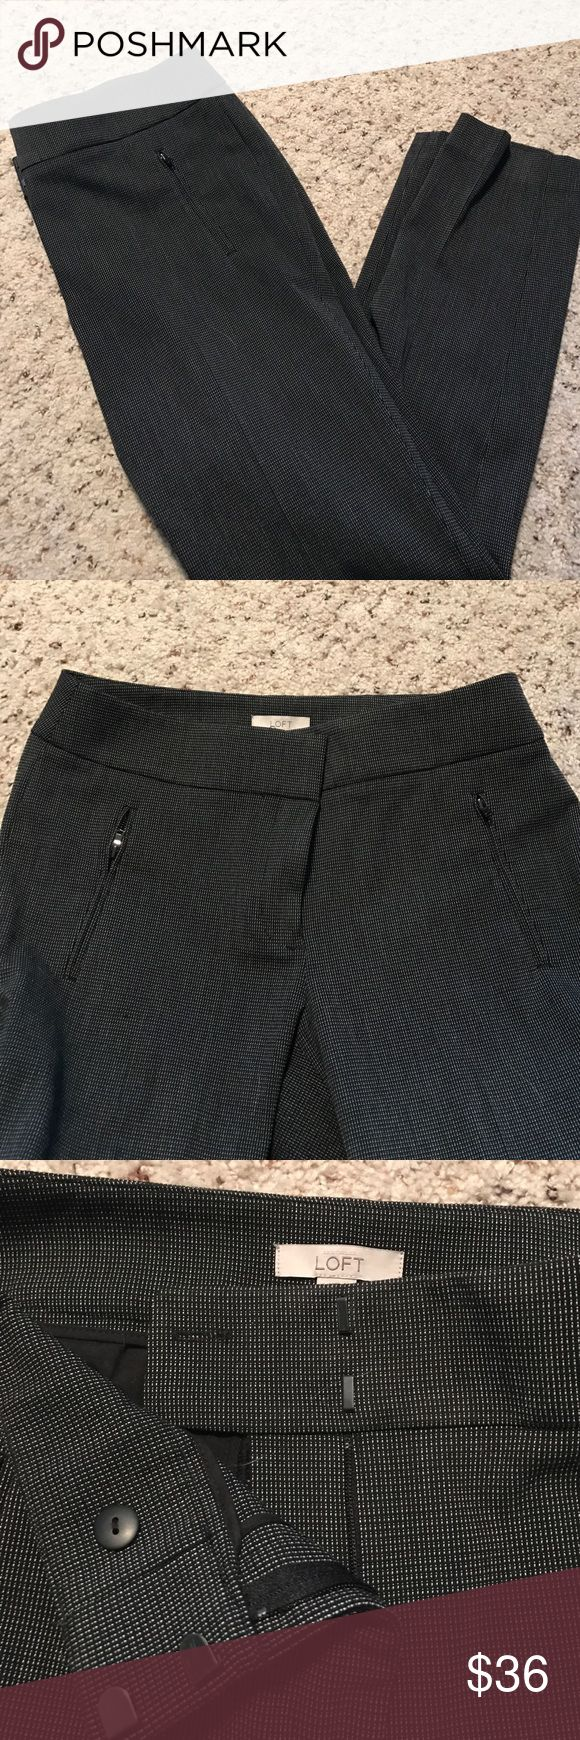 Loft black and white slacks with zipper pockets Worn once! These are very well made and look and feel expensive! They are a subtle black and white checkered pattern. Button and hook closures in front. LOFT Pants Trousers